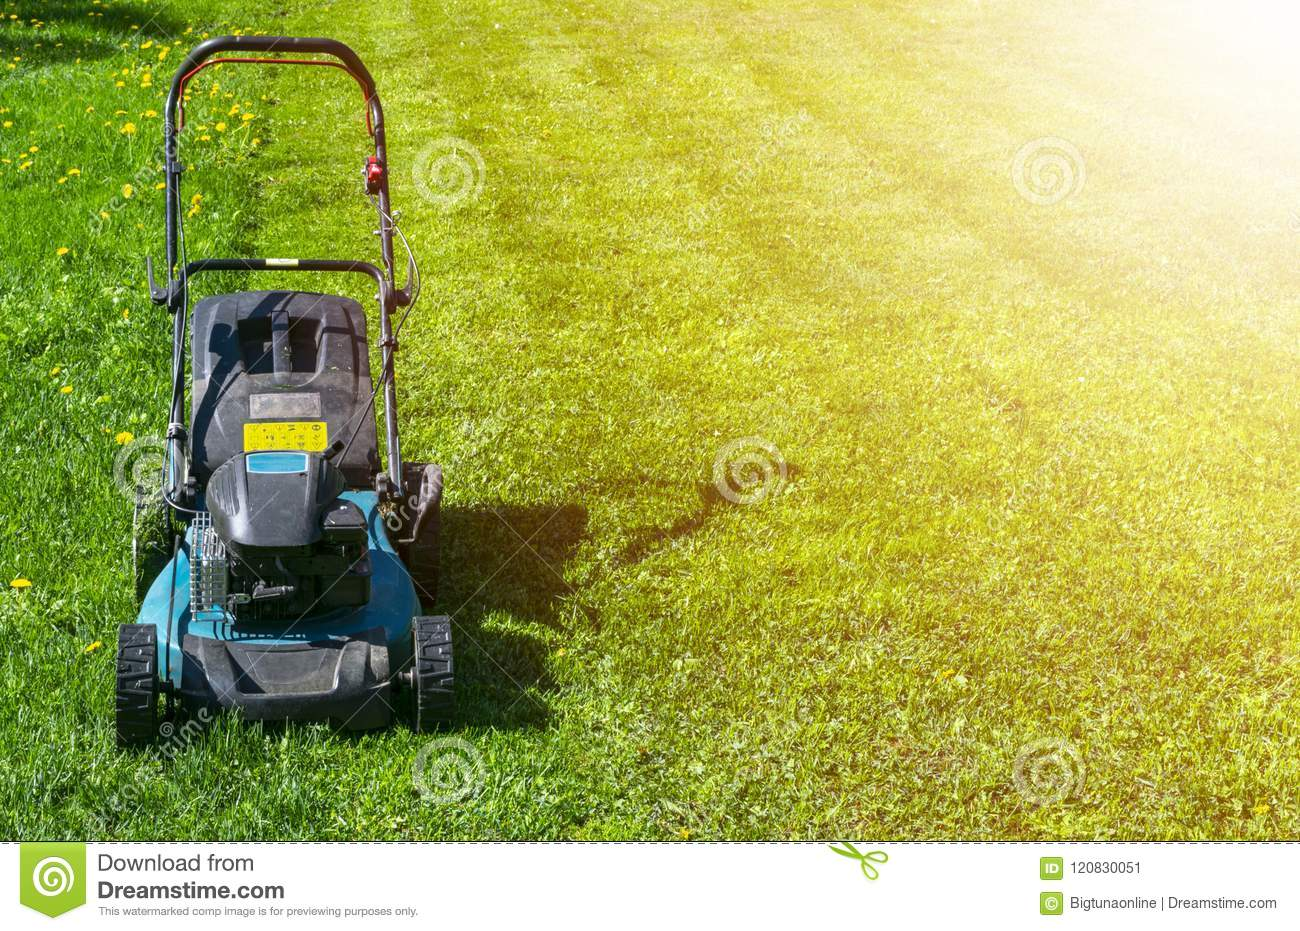 Mowing lawns, Lawn mower on green grass, mower grass equipment, mowing gardener care work tool, close up view, sunny day. Soft lig